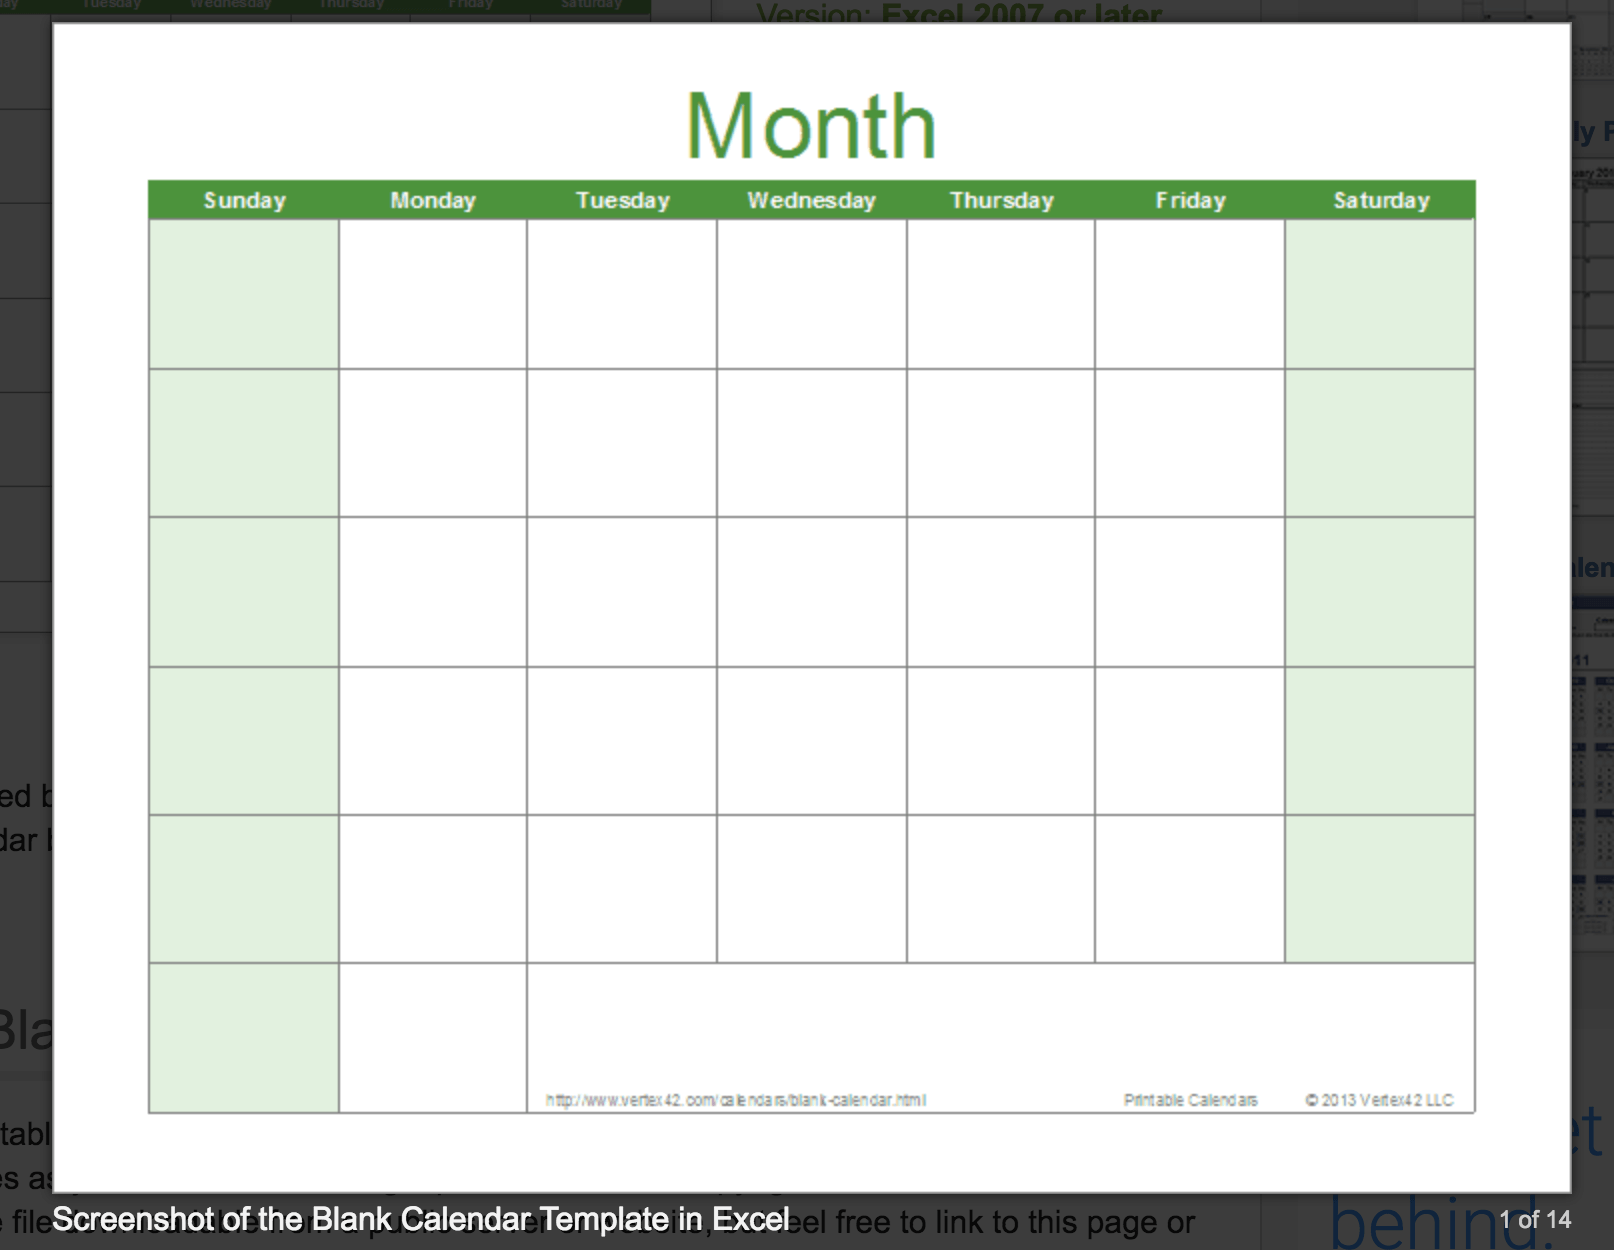 blank excel calendar templates at vertex42